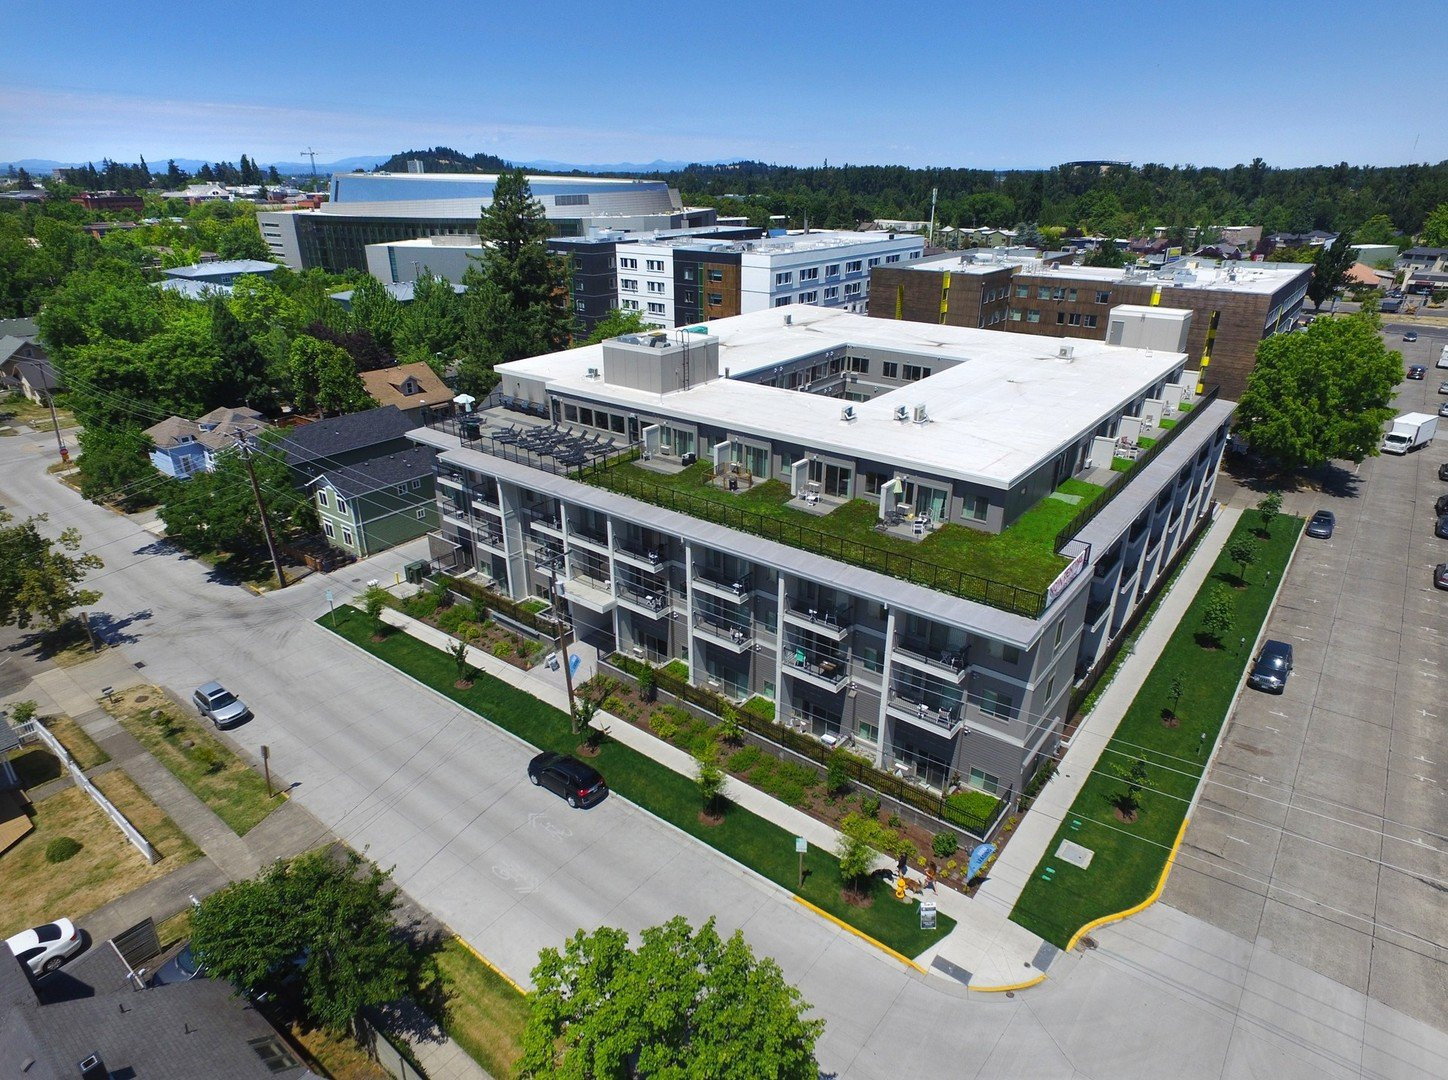 Aerial photo of Orchard Crossing Campus Apartments in Eugene